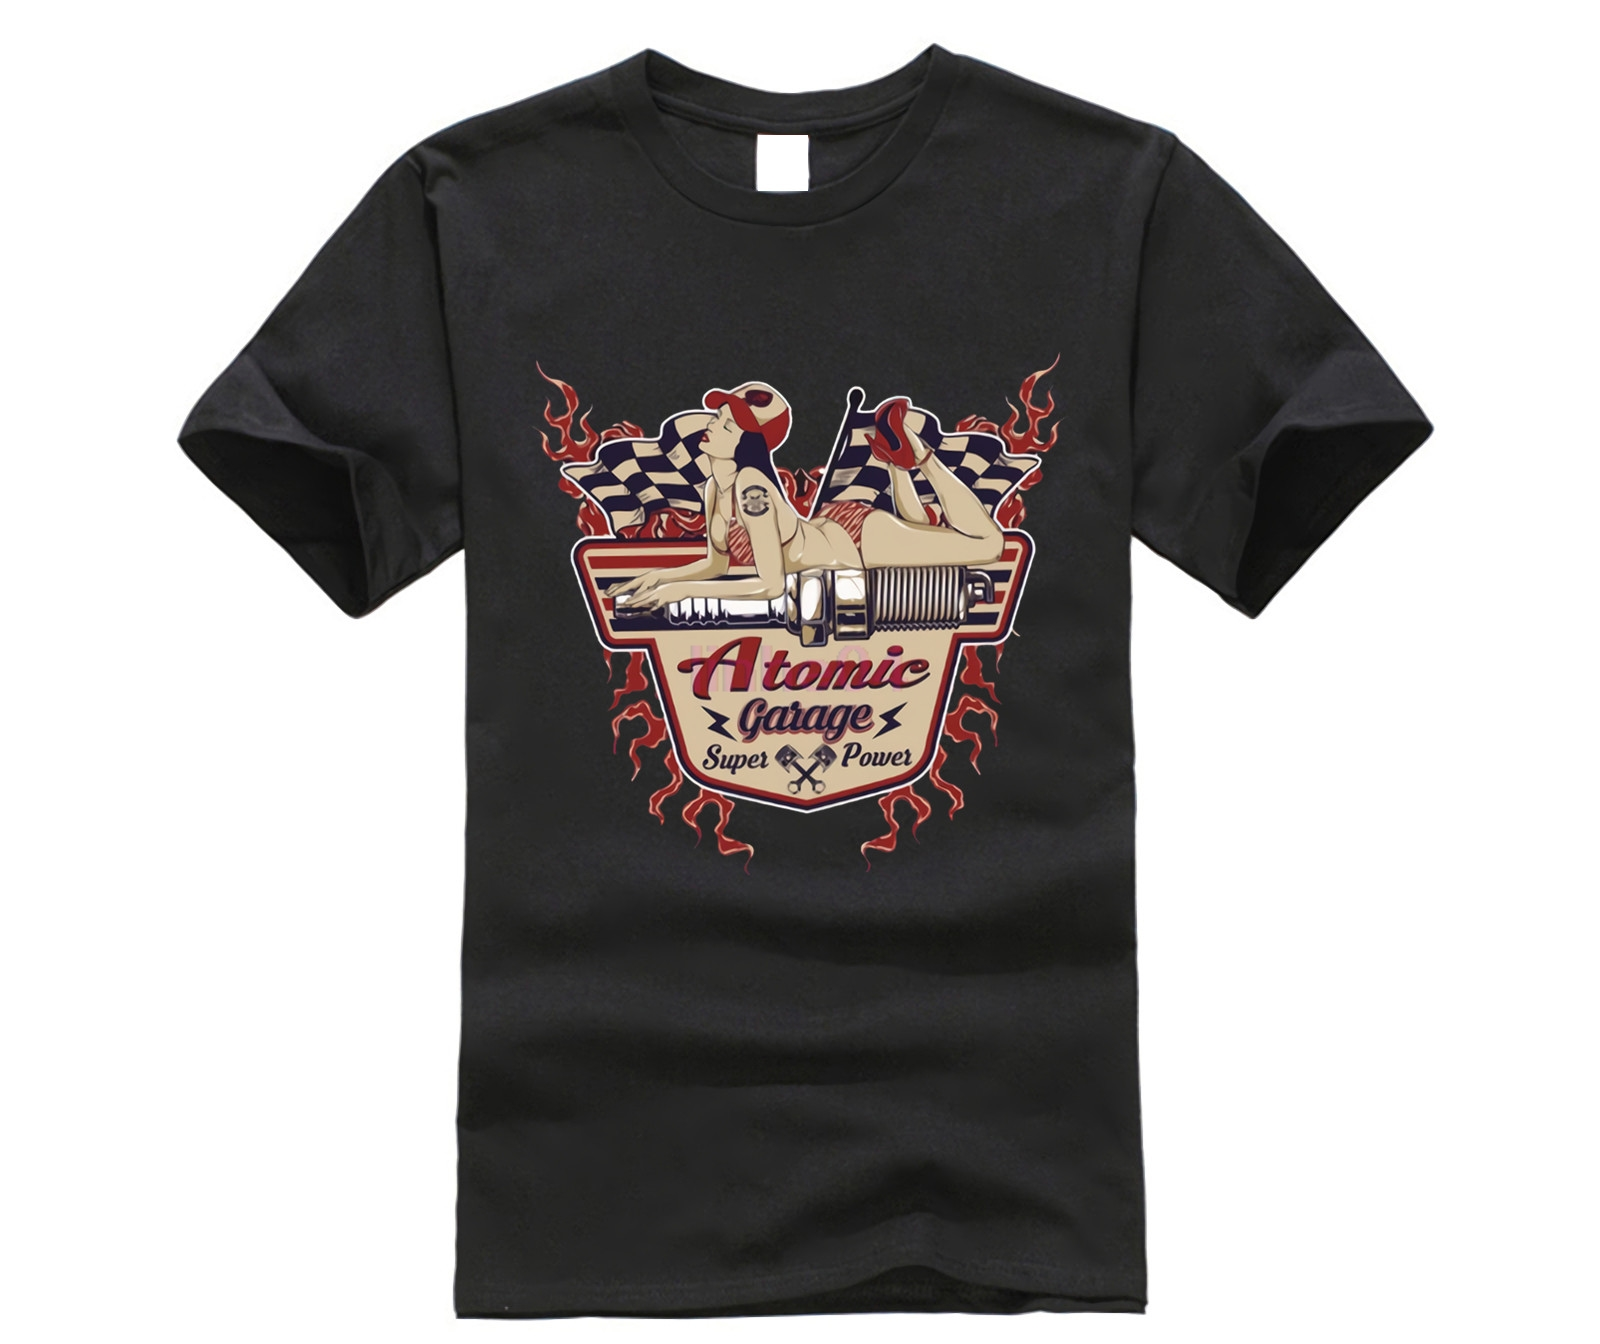 2018 Fashion Brand Cotton Tee <font><b>shirts</b></font> Old School Atomic Garage Pin Up Rockabilly US Car Hot Rod <font><b>V8</b></font> <font><b>T</b></font> <font><b>Shirt</b></font> Black Style <font><b>T</b></font>-<font><b>shirt</b></font> image